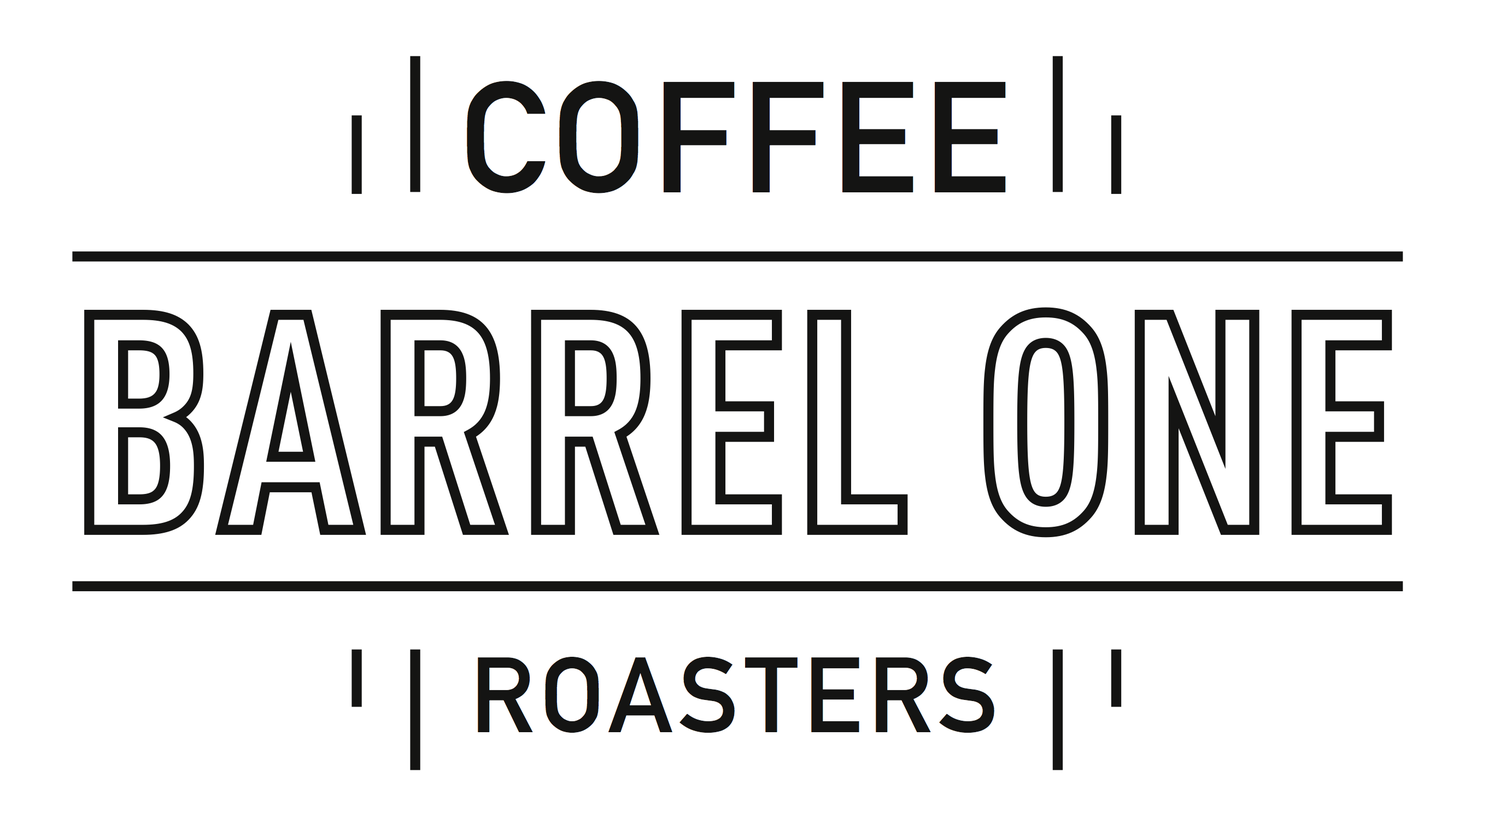 Barrel One Coffee Roasters